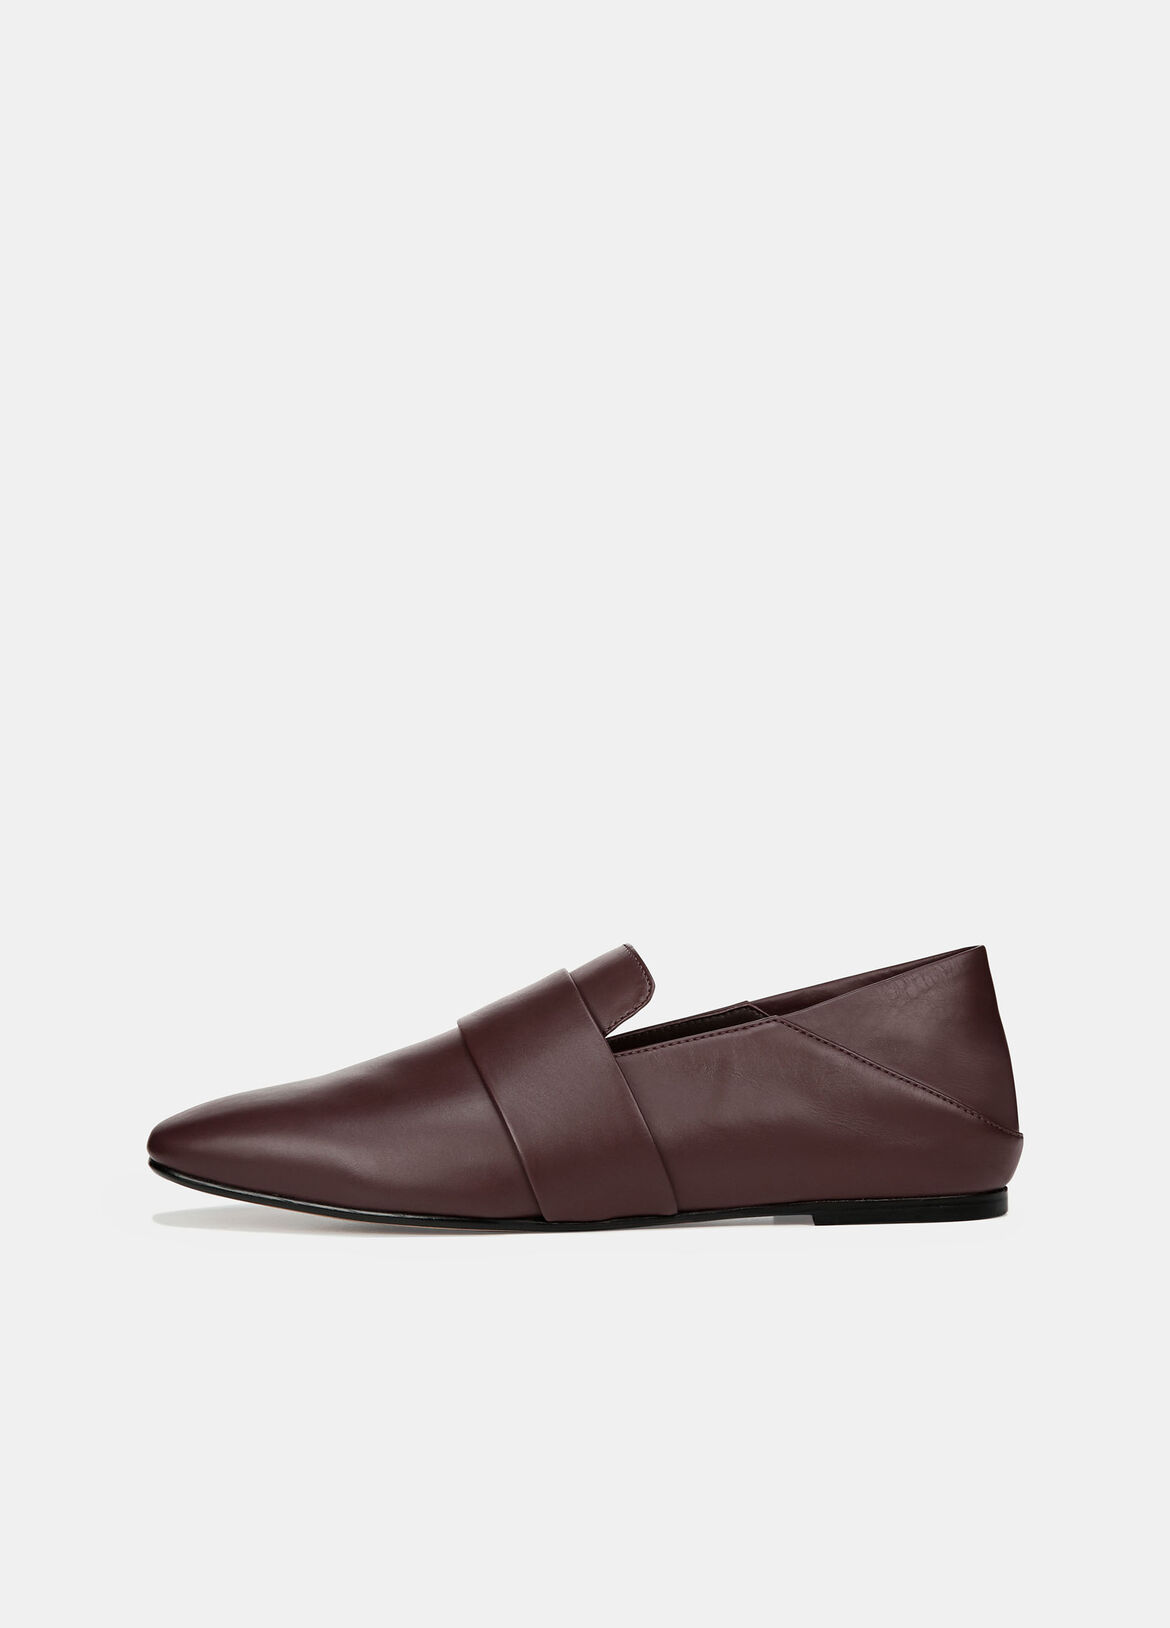 The pared-back loafer feels luxurious in buttery-soft leather with a smooth finish. Details reveal a minimal penny keeper and a fold-down heel-go from sleek to casual with an effortless collapse.